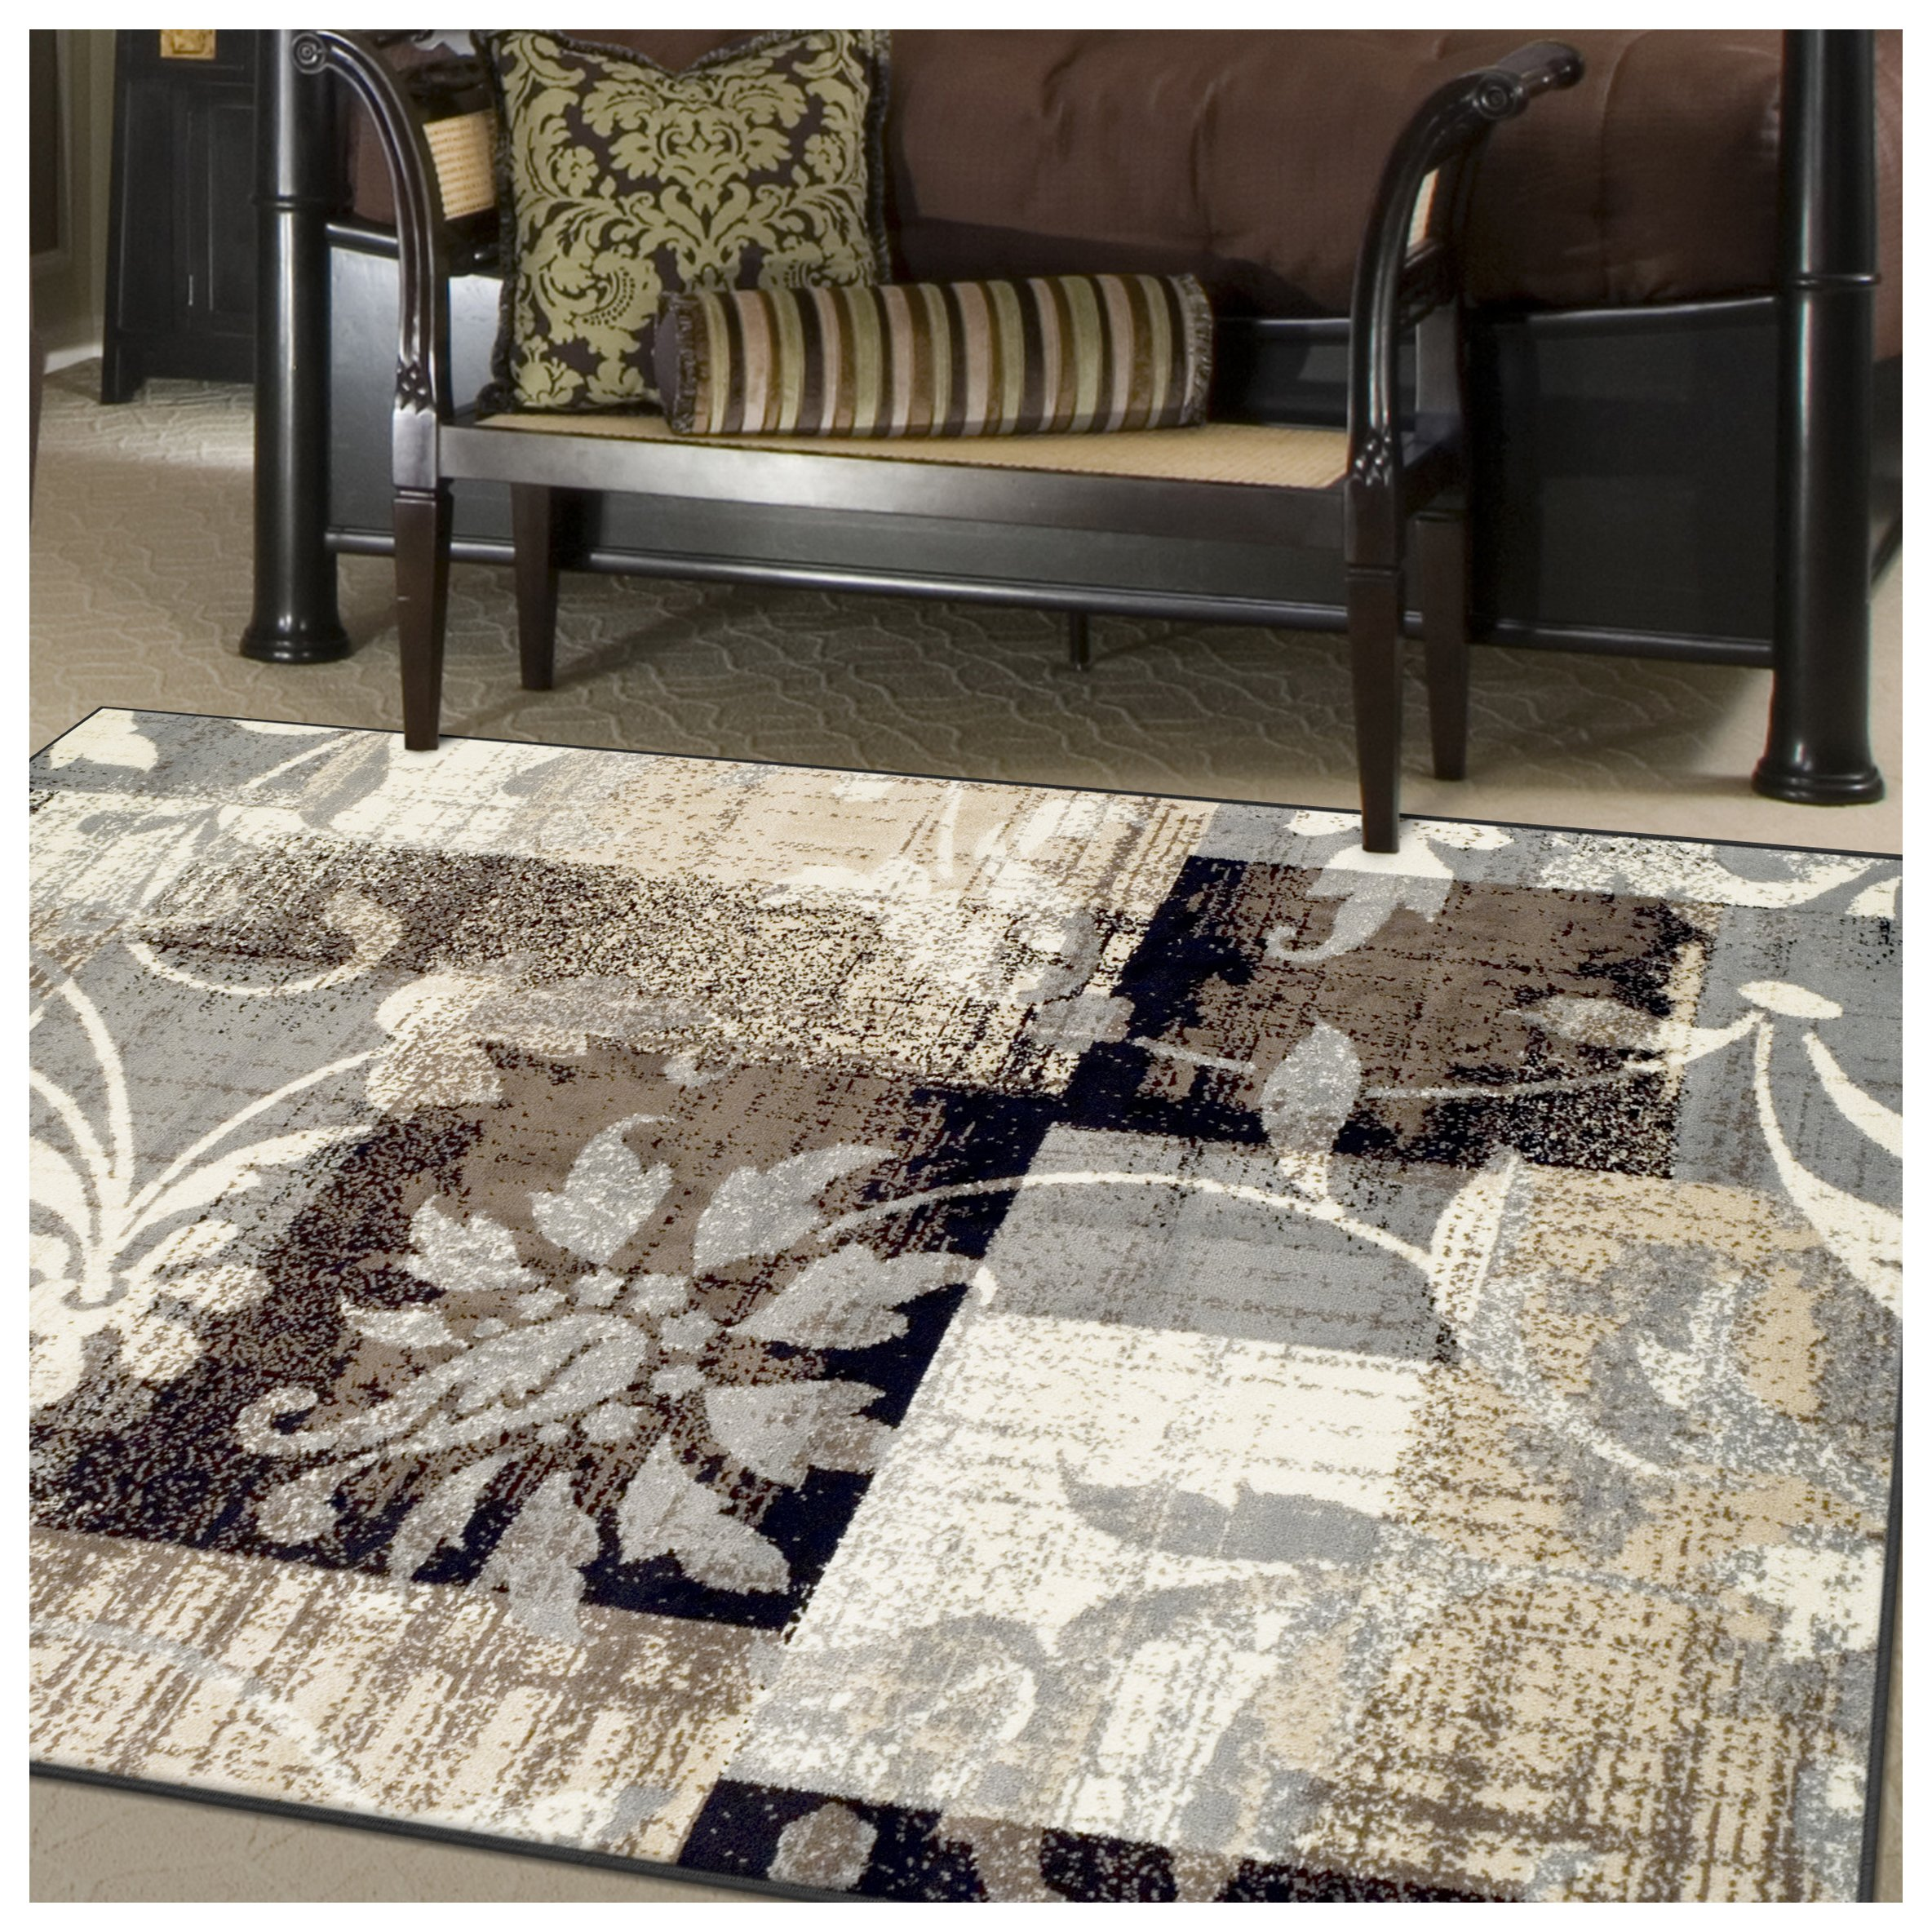 Superior Pastiche Collection Area Rug, 8mm Pile Height with Jute Backing, Chic Geometric Floral Patchwork Design, Fashionable and Affordable Woven Rugs - 8' x 10' Rug